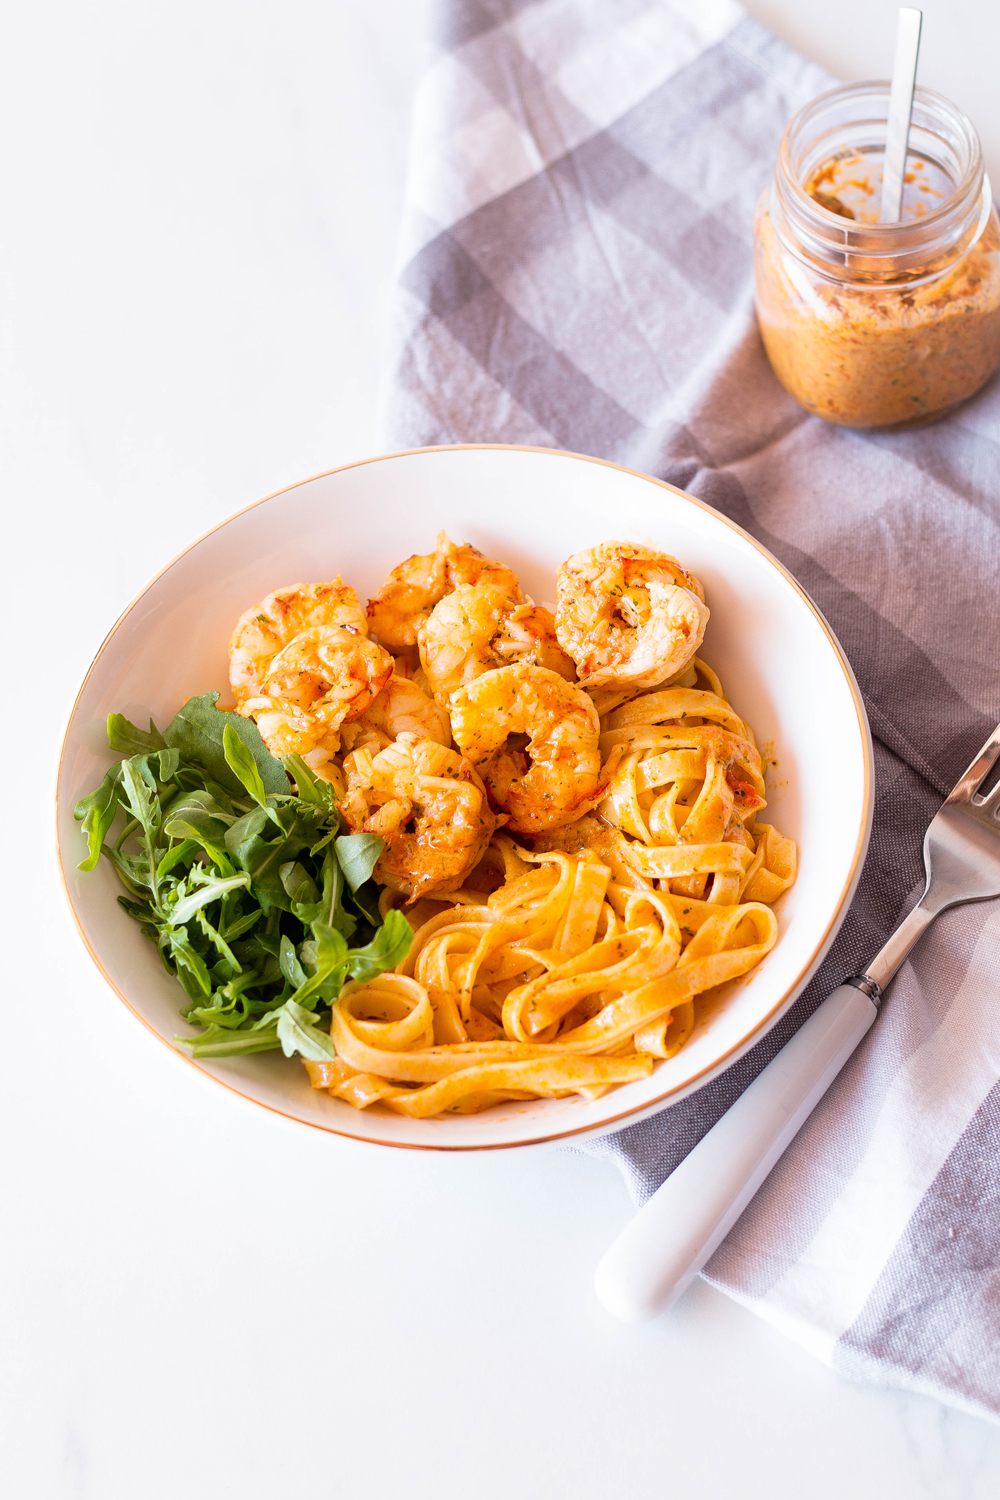 Since the quality of food we eat plays one of the most significant roles in hormonal imbalance, it's time you feed your body and soul with this buttery, garlicky, and oh so creamy shrimp fettuccine. One serving size provides you with enough saturated fat and cholesterol to get you through the day, plus the homemade tomato and garlic butter is pretty damn delicious! https://www.spotebi.com/recipes/garlic-lemon-tomatoes-shrimp-fettuccine/